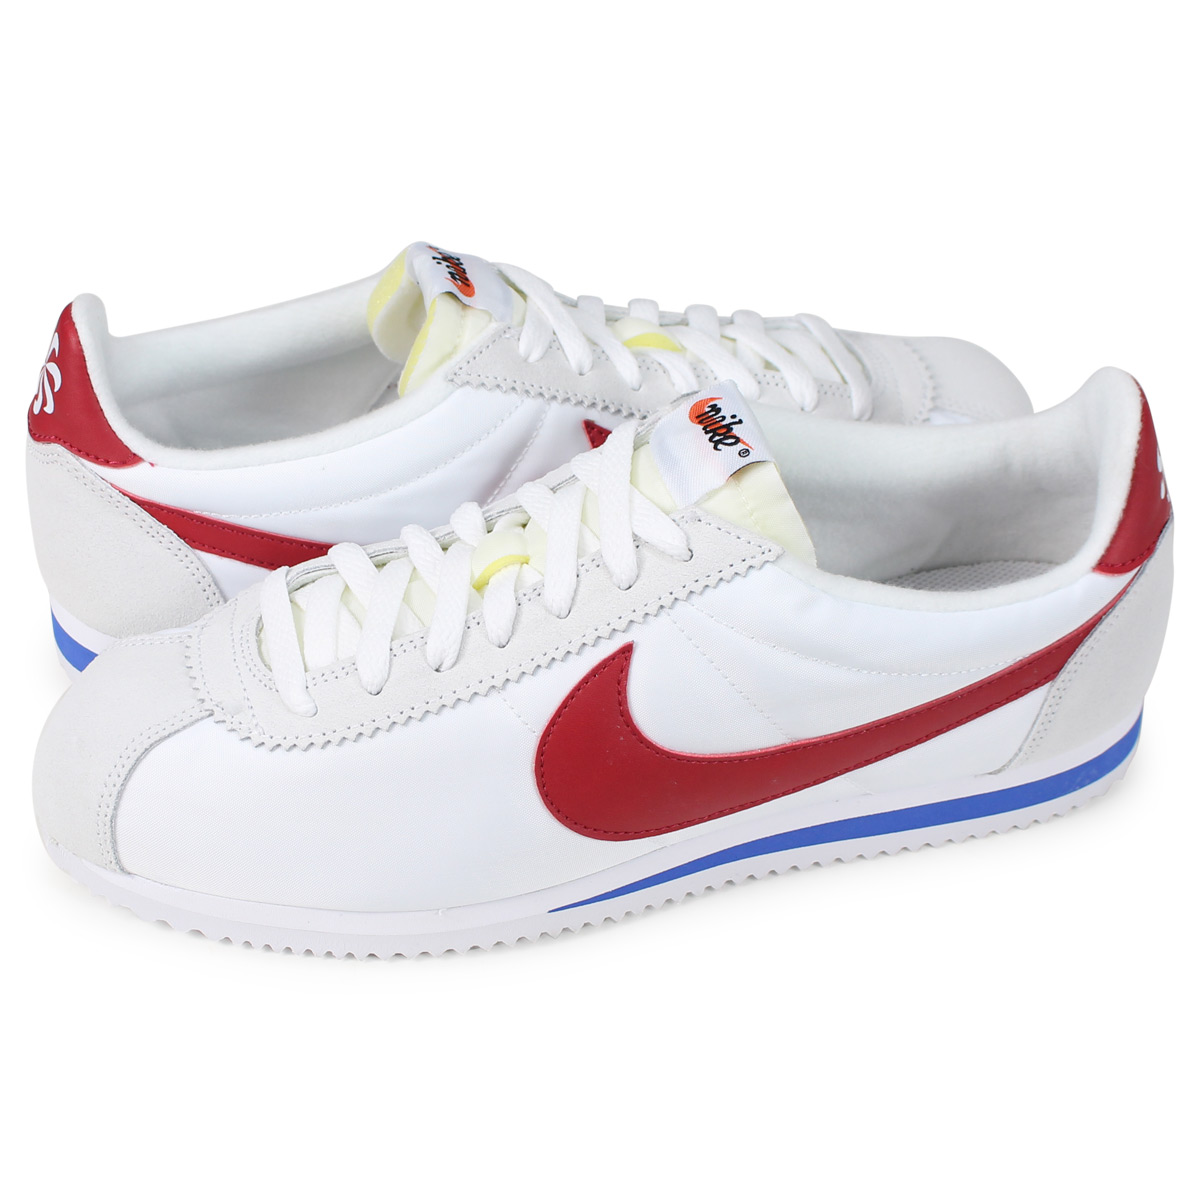 pretty nice e965c de43d Nike NIKE コルテッツクラシックスニーカーメンズ CLASSIC CORTEZ ATHLETICS WEST QS white  847,709-164 [load planned Shinnyu load in reservation product 11/19  containing] ...